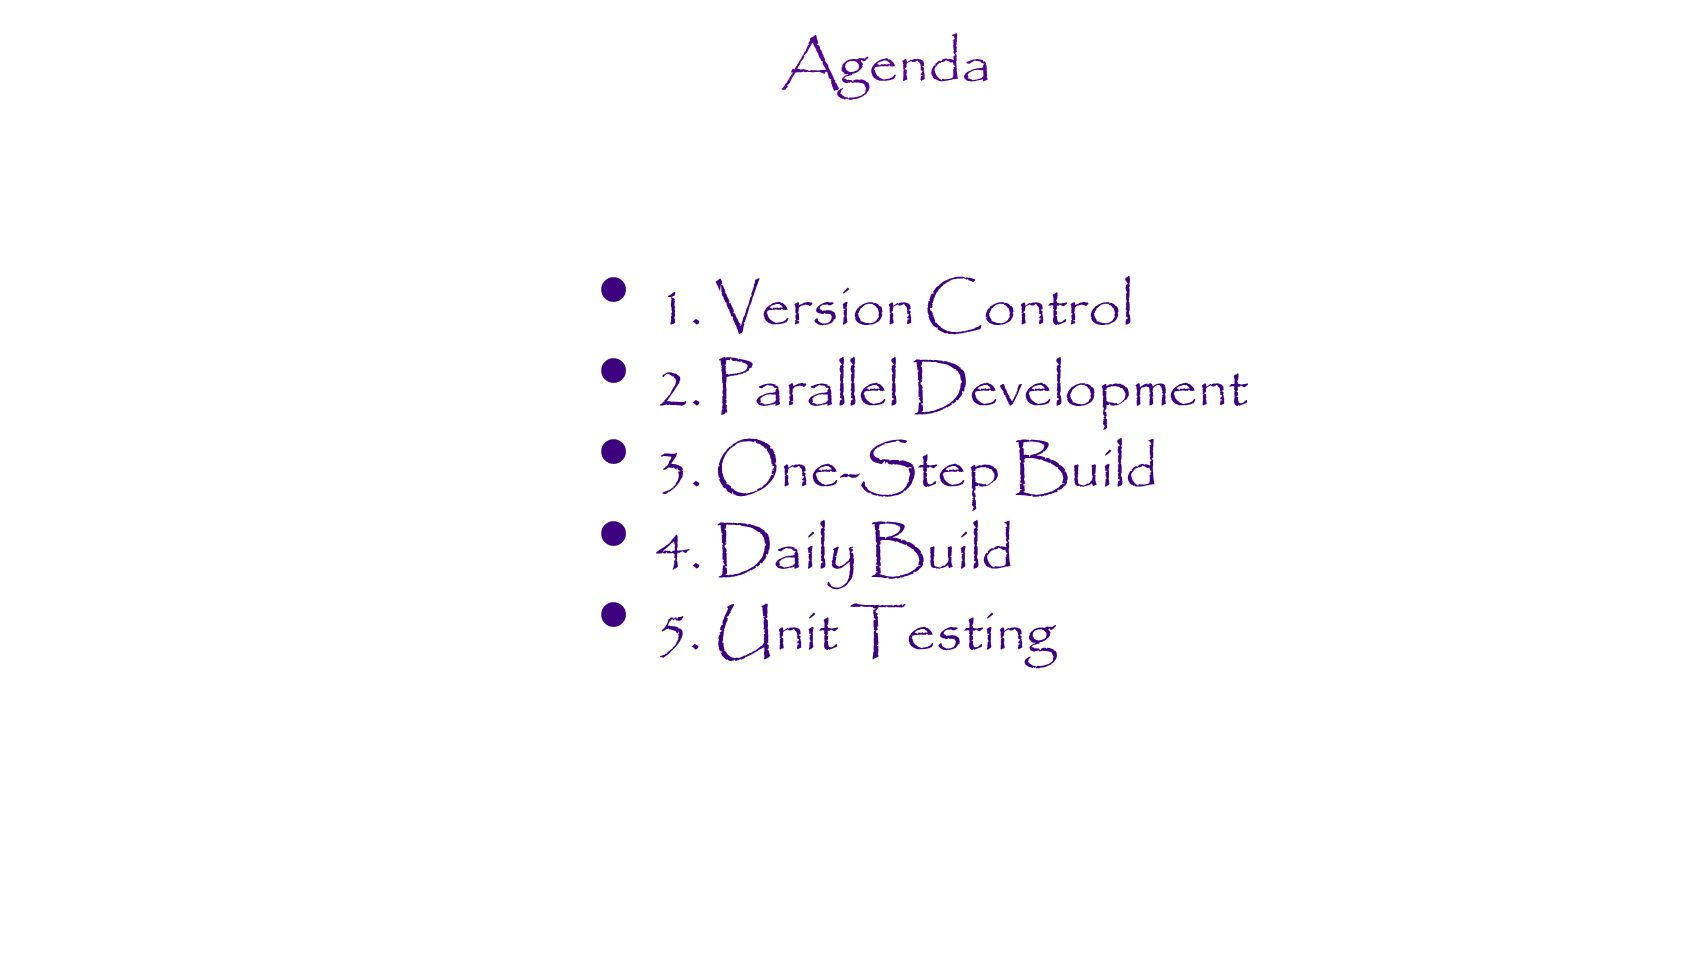 Agenda 1. Version Control 2. Parallel Development 3. One-Step Build 4. Daily Build 5. Unit Testing